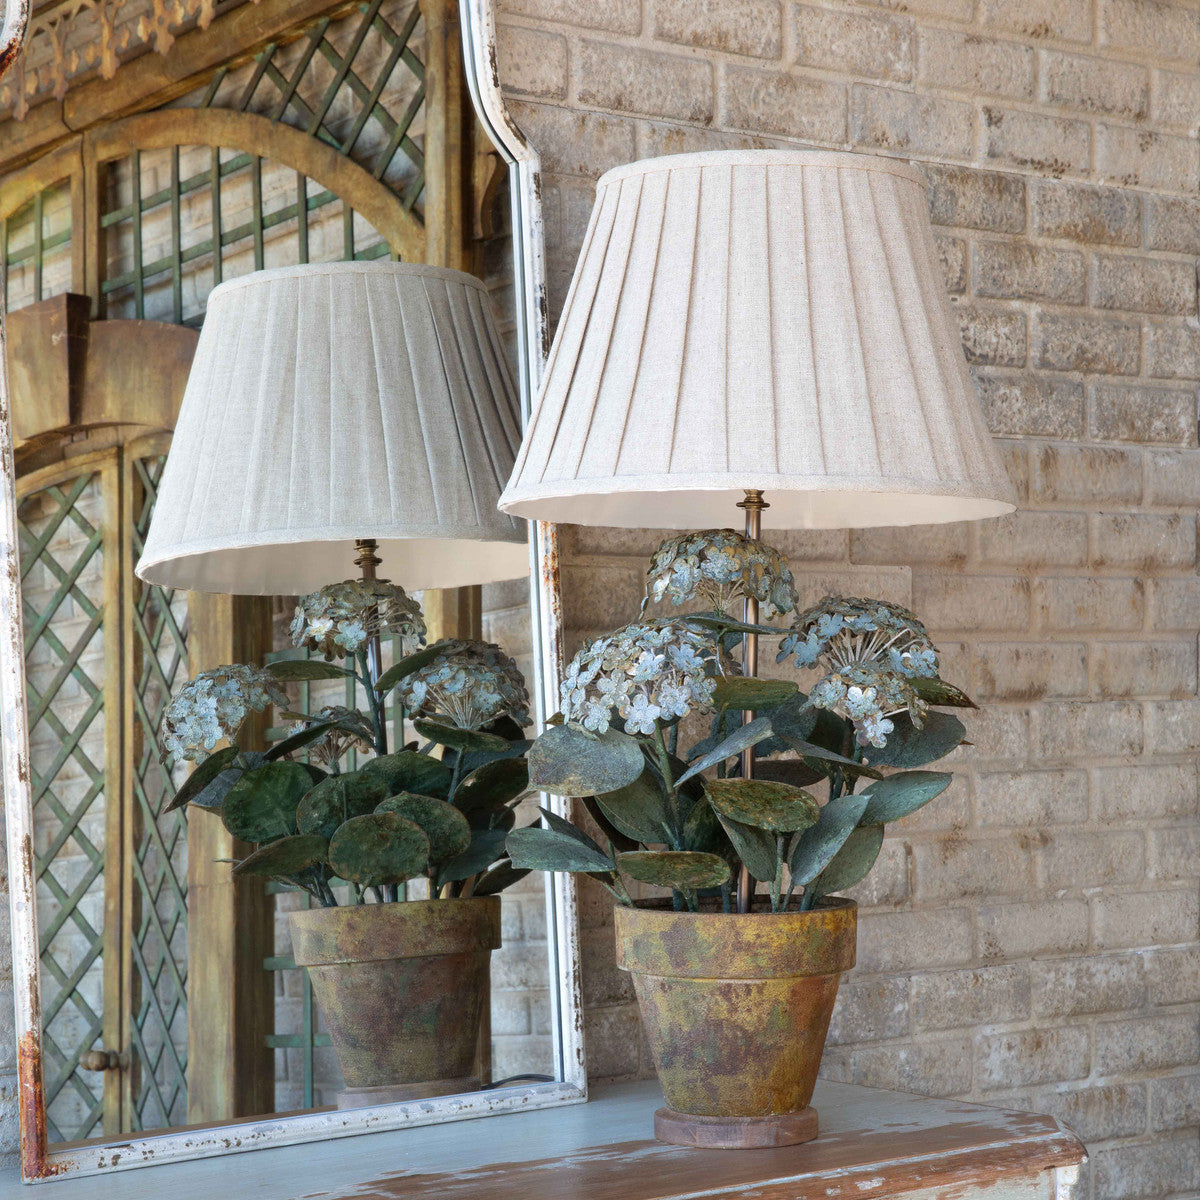 Lovecup Aged Metal Potted Hydrangea Lamp L90903